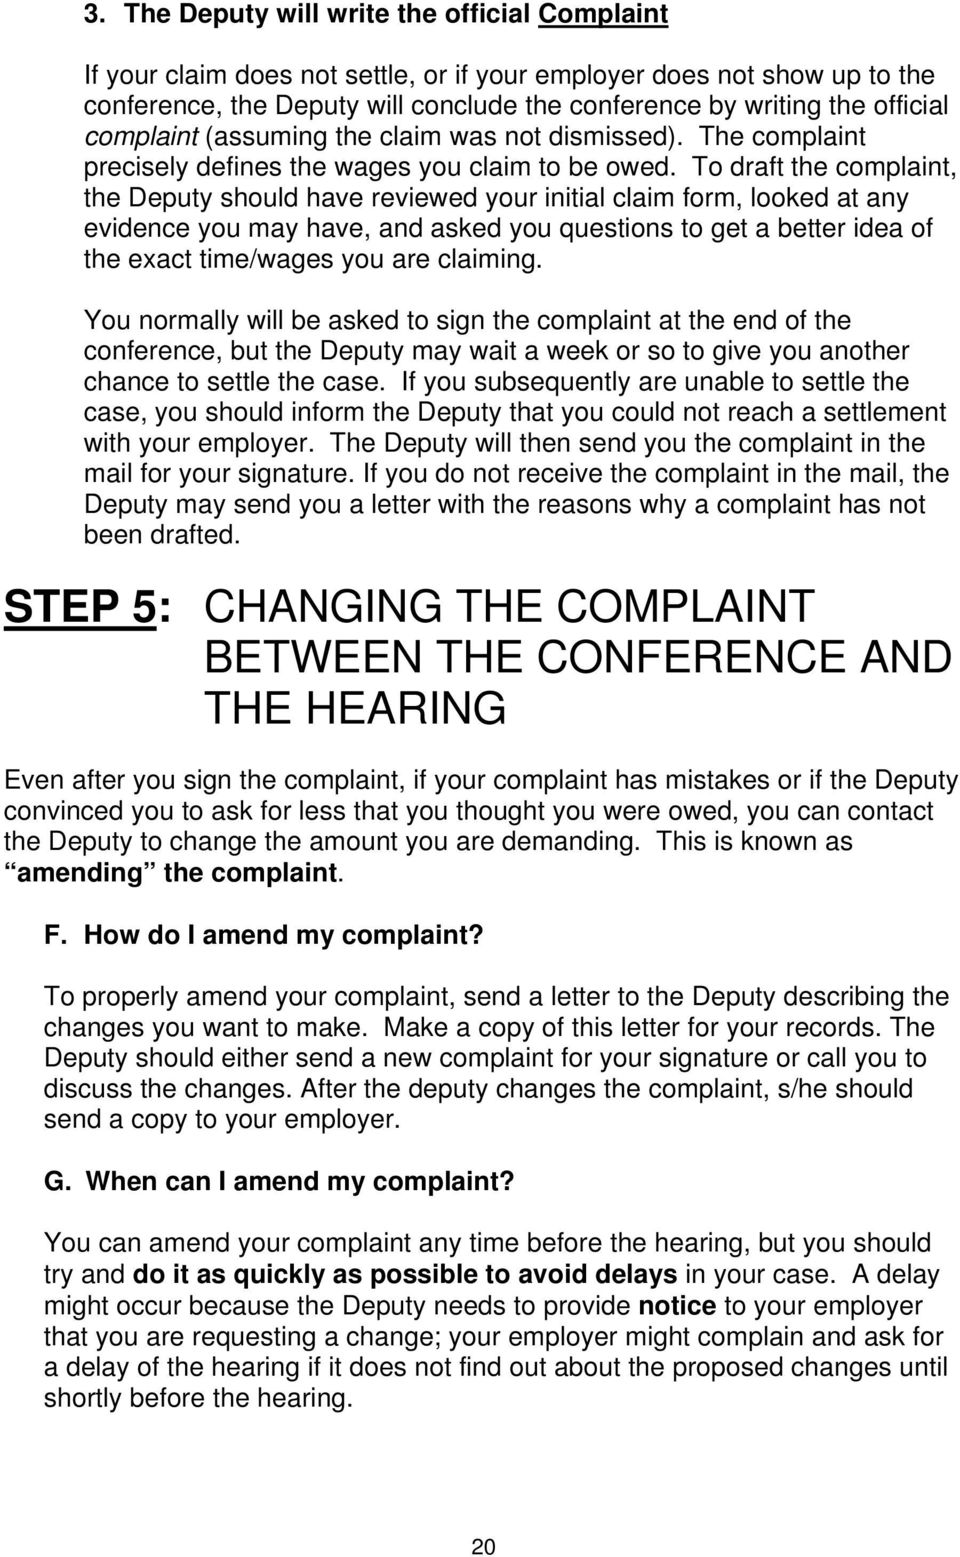 To draft the complaint, the Deputy should have reviewed your initial claim form, looked at any evidence you may have, and asked you questions to get a better idea of the exact time/wages you are